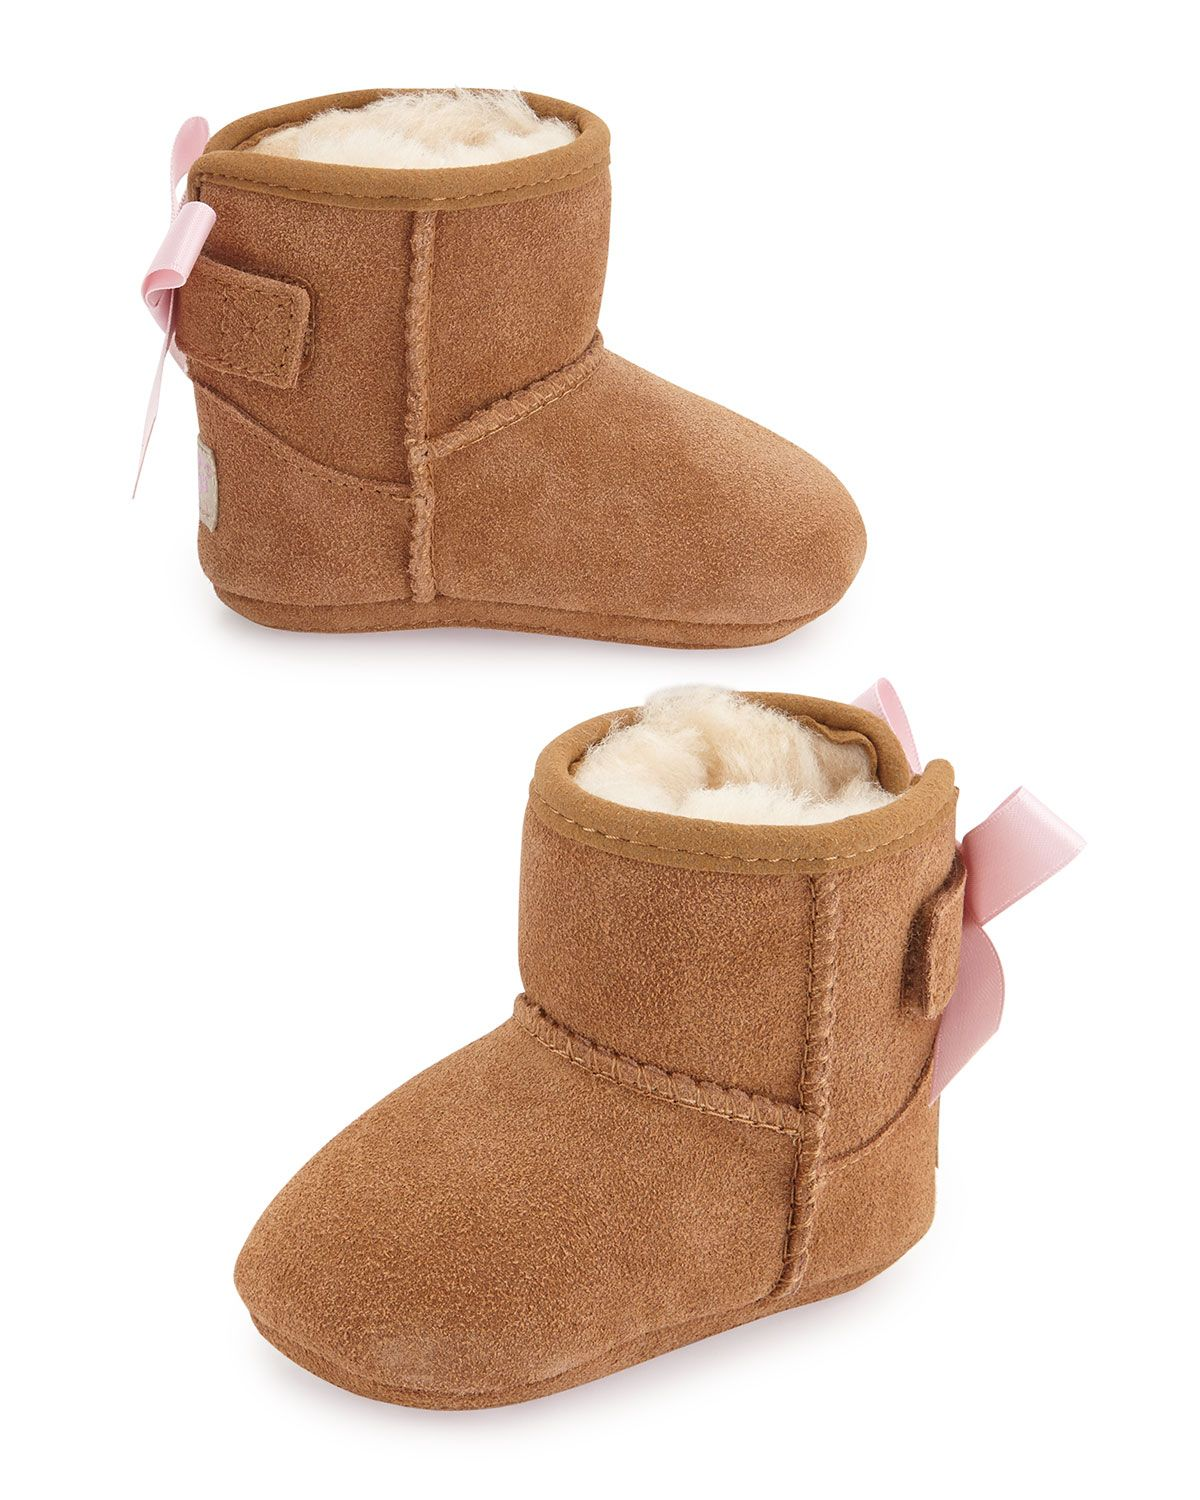 54b8eef0179 Jesse Suede Boots w/ Bow Chestnut Babies' Sizes 0-18 Months | boots ...